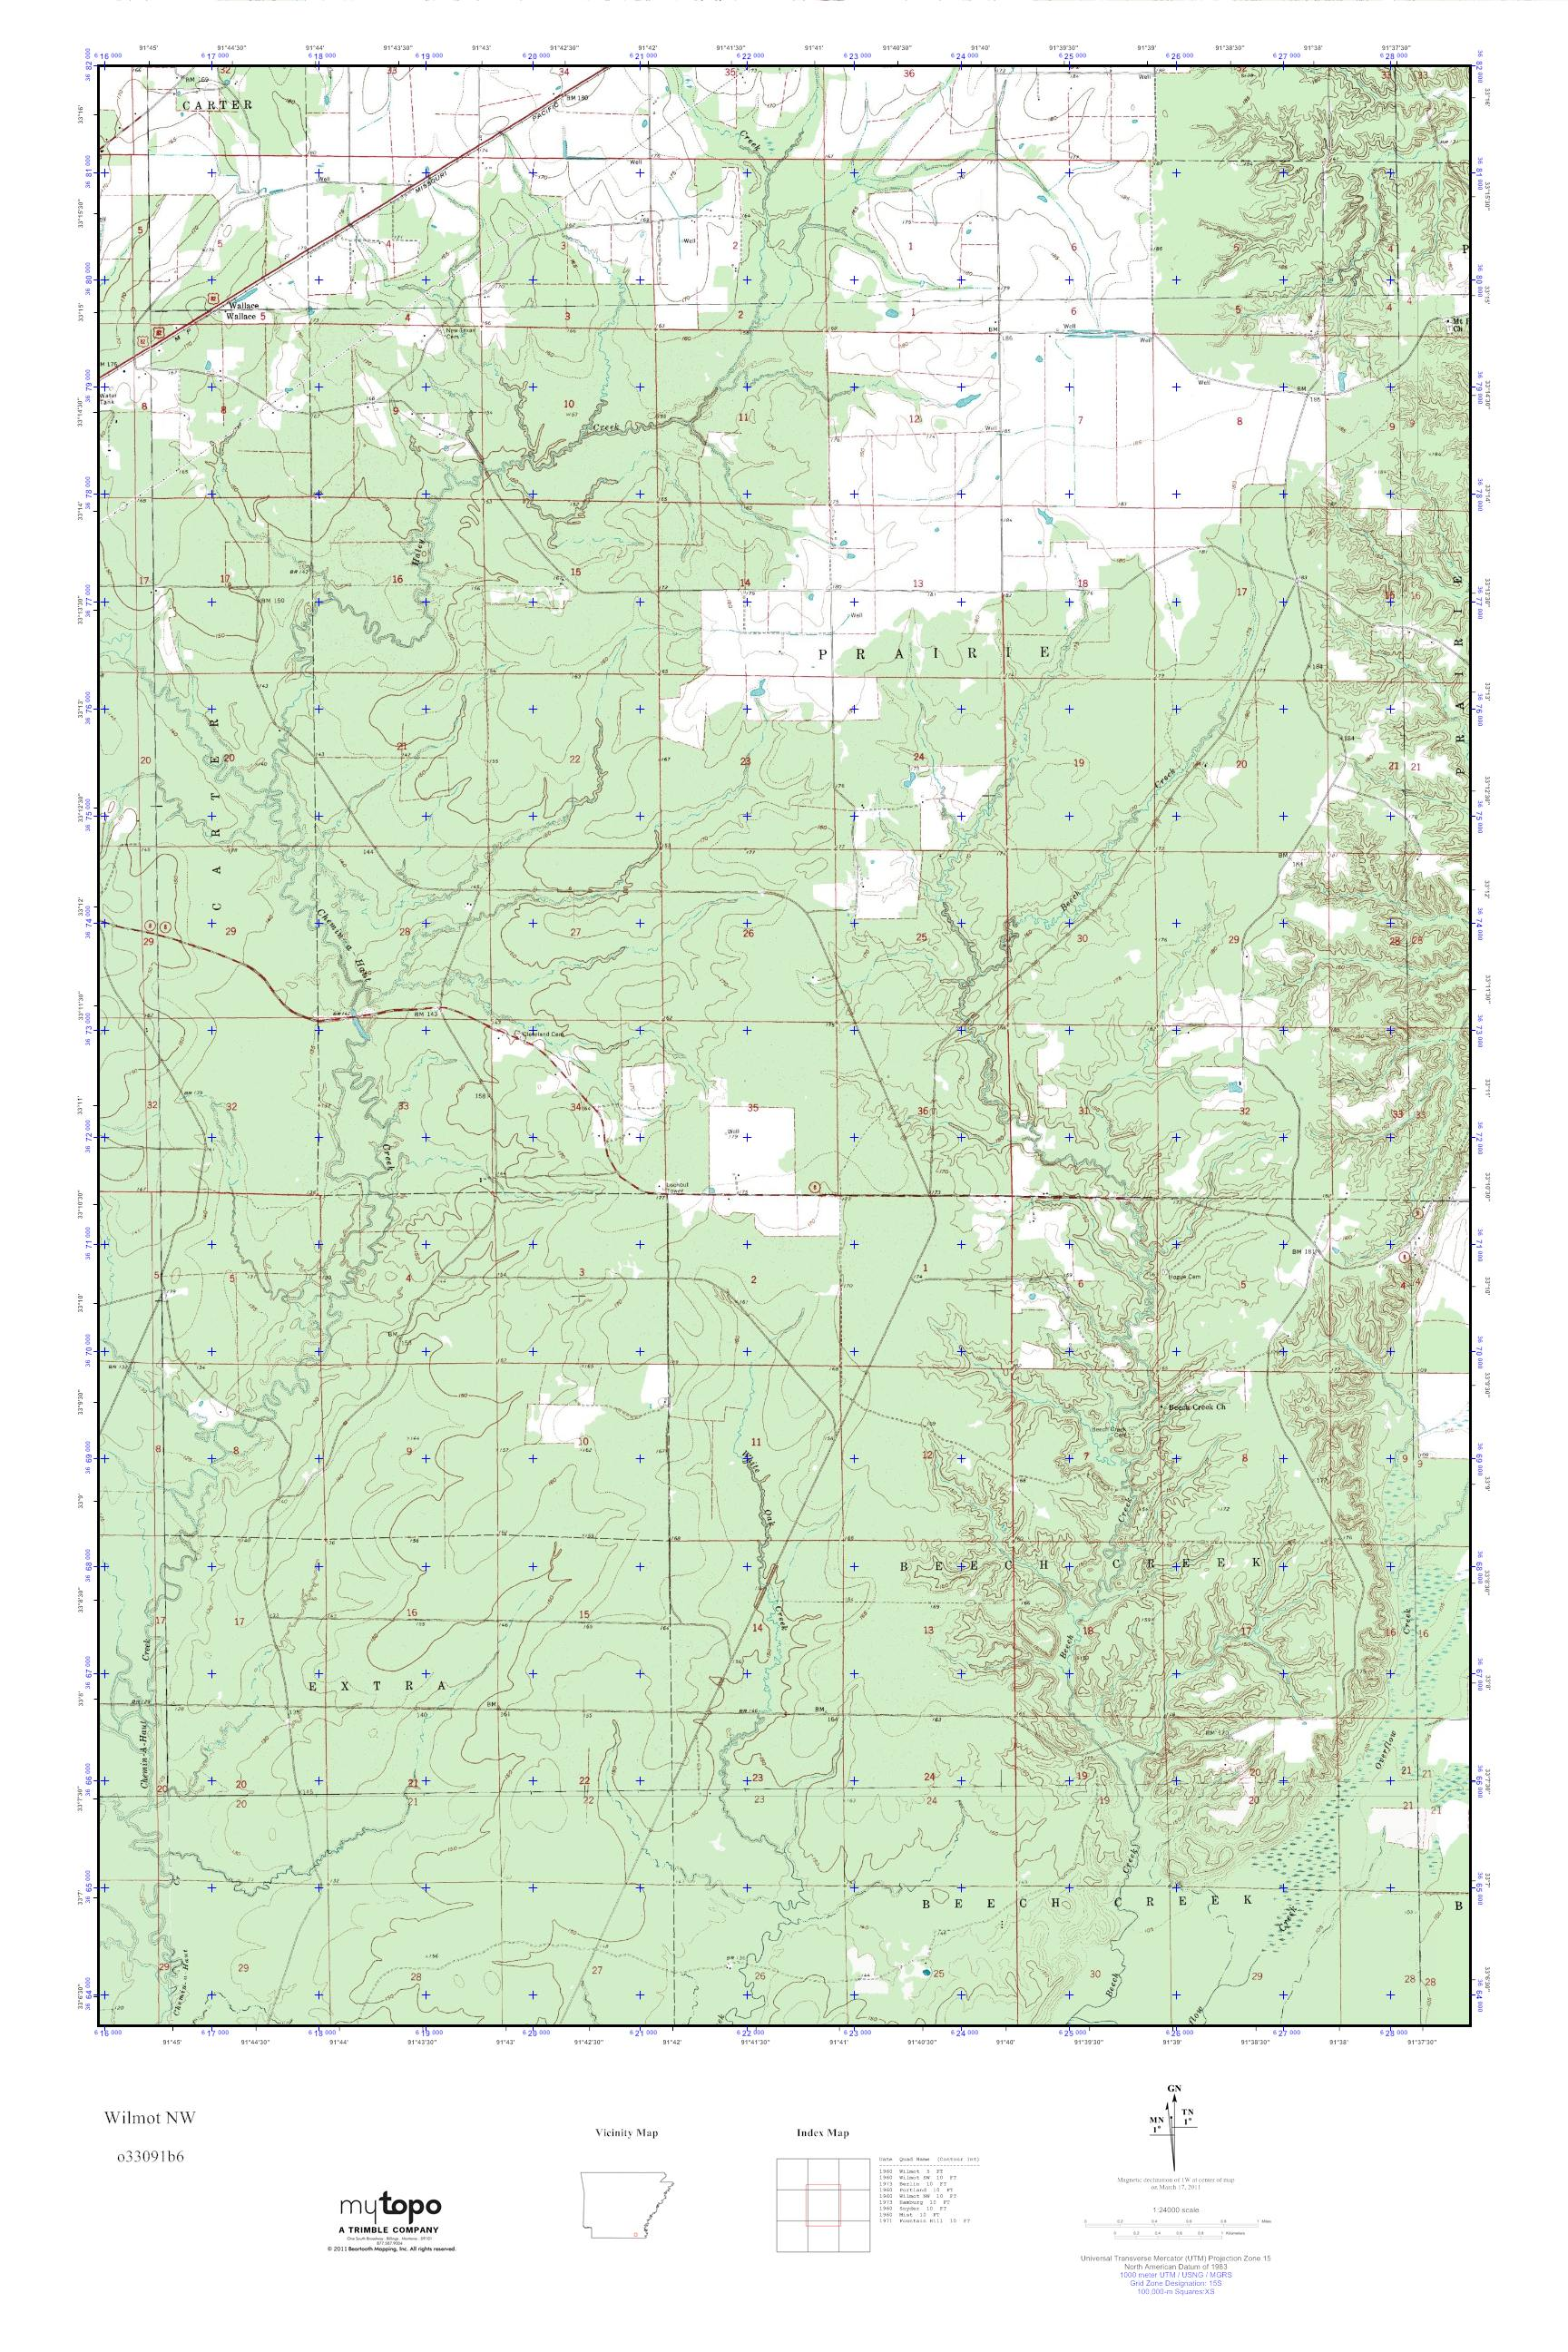 MyTopo Wilmot NW, Arkansas USGS Quad Topo Map